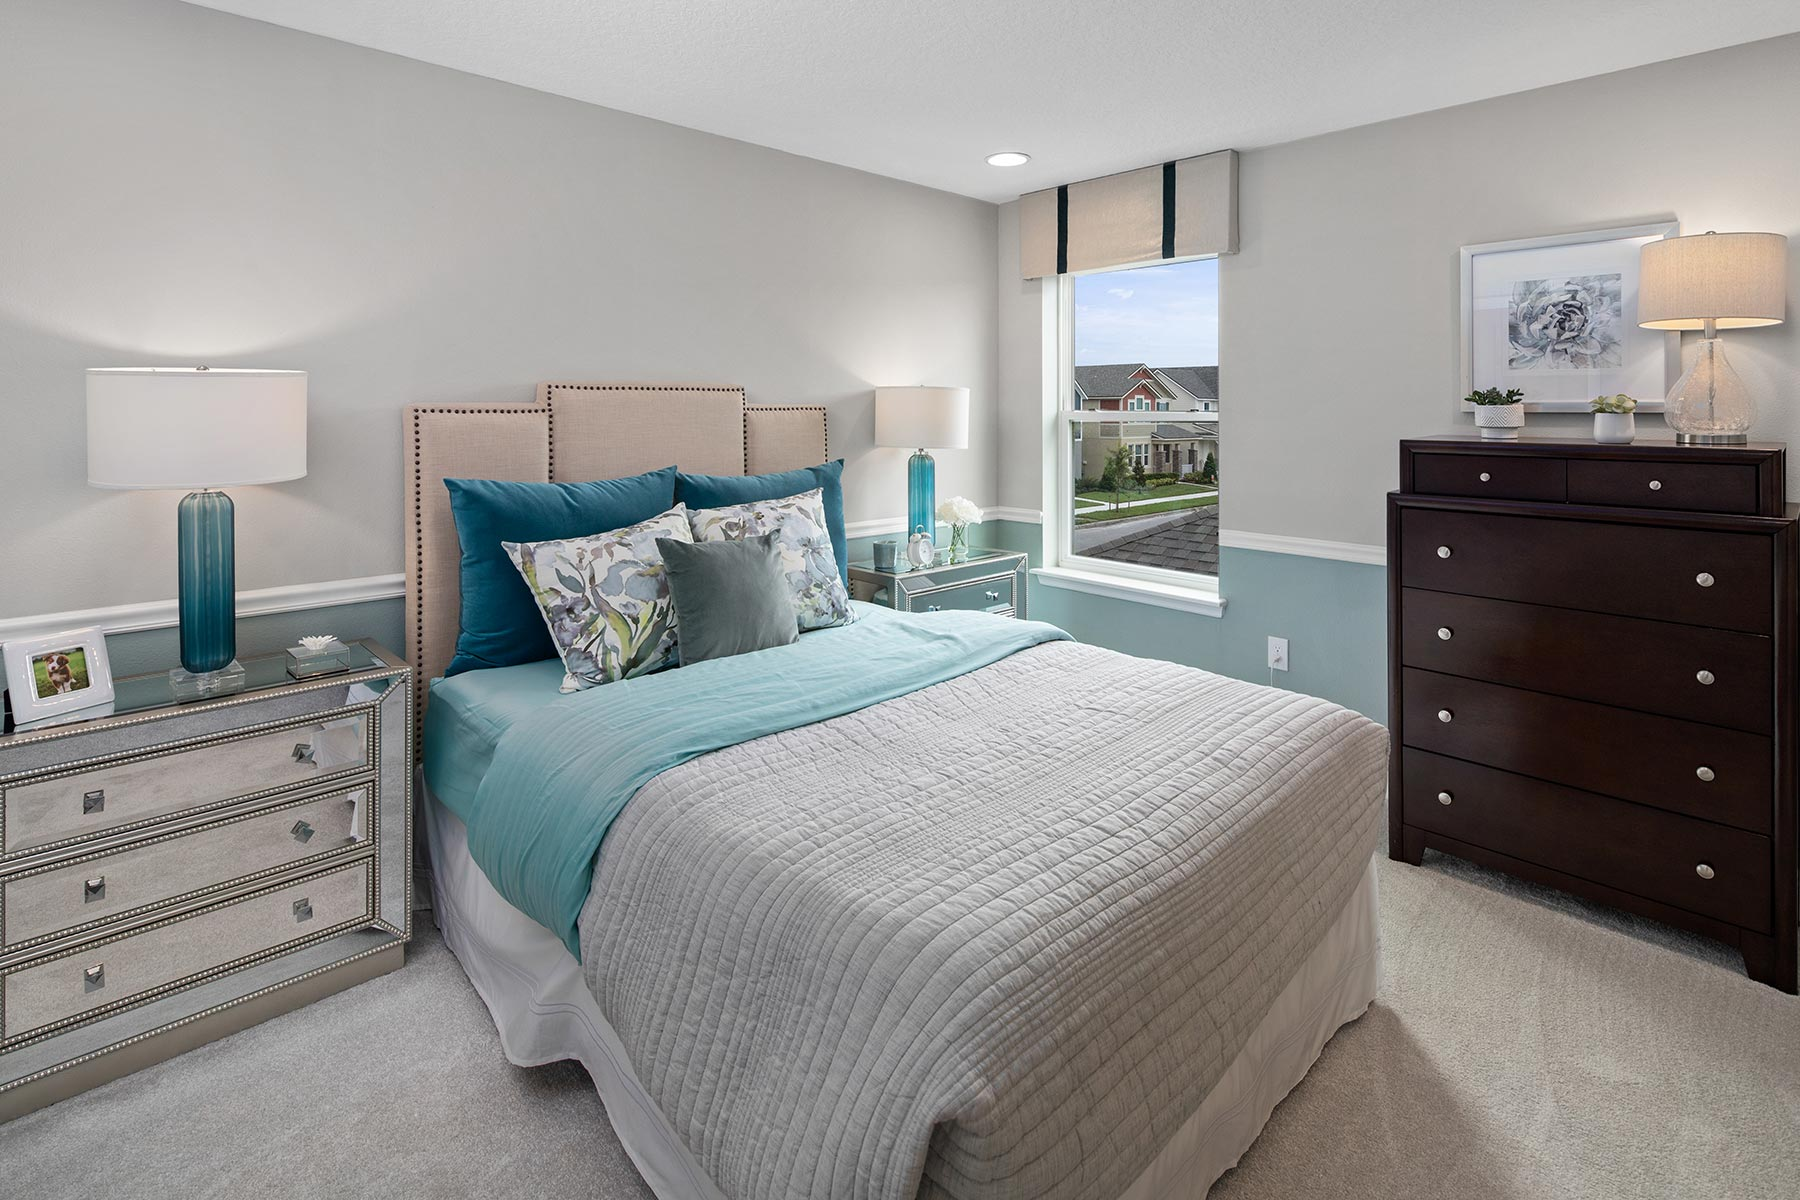 Canon Plan Bedroom at Tohoqua in Kissimmee Florida by Mattamy Homes